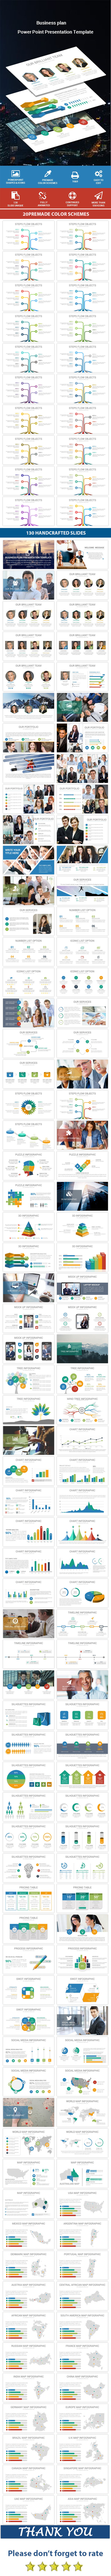 Business Plan PowerPoint Presentation Template - PowerPoint Templates Presentation Templates